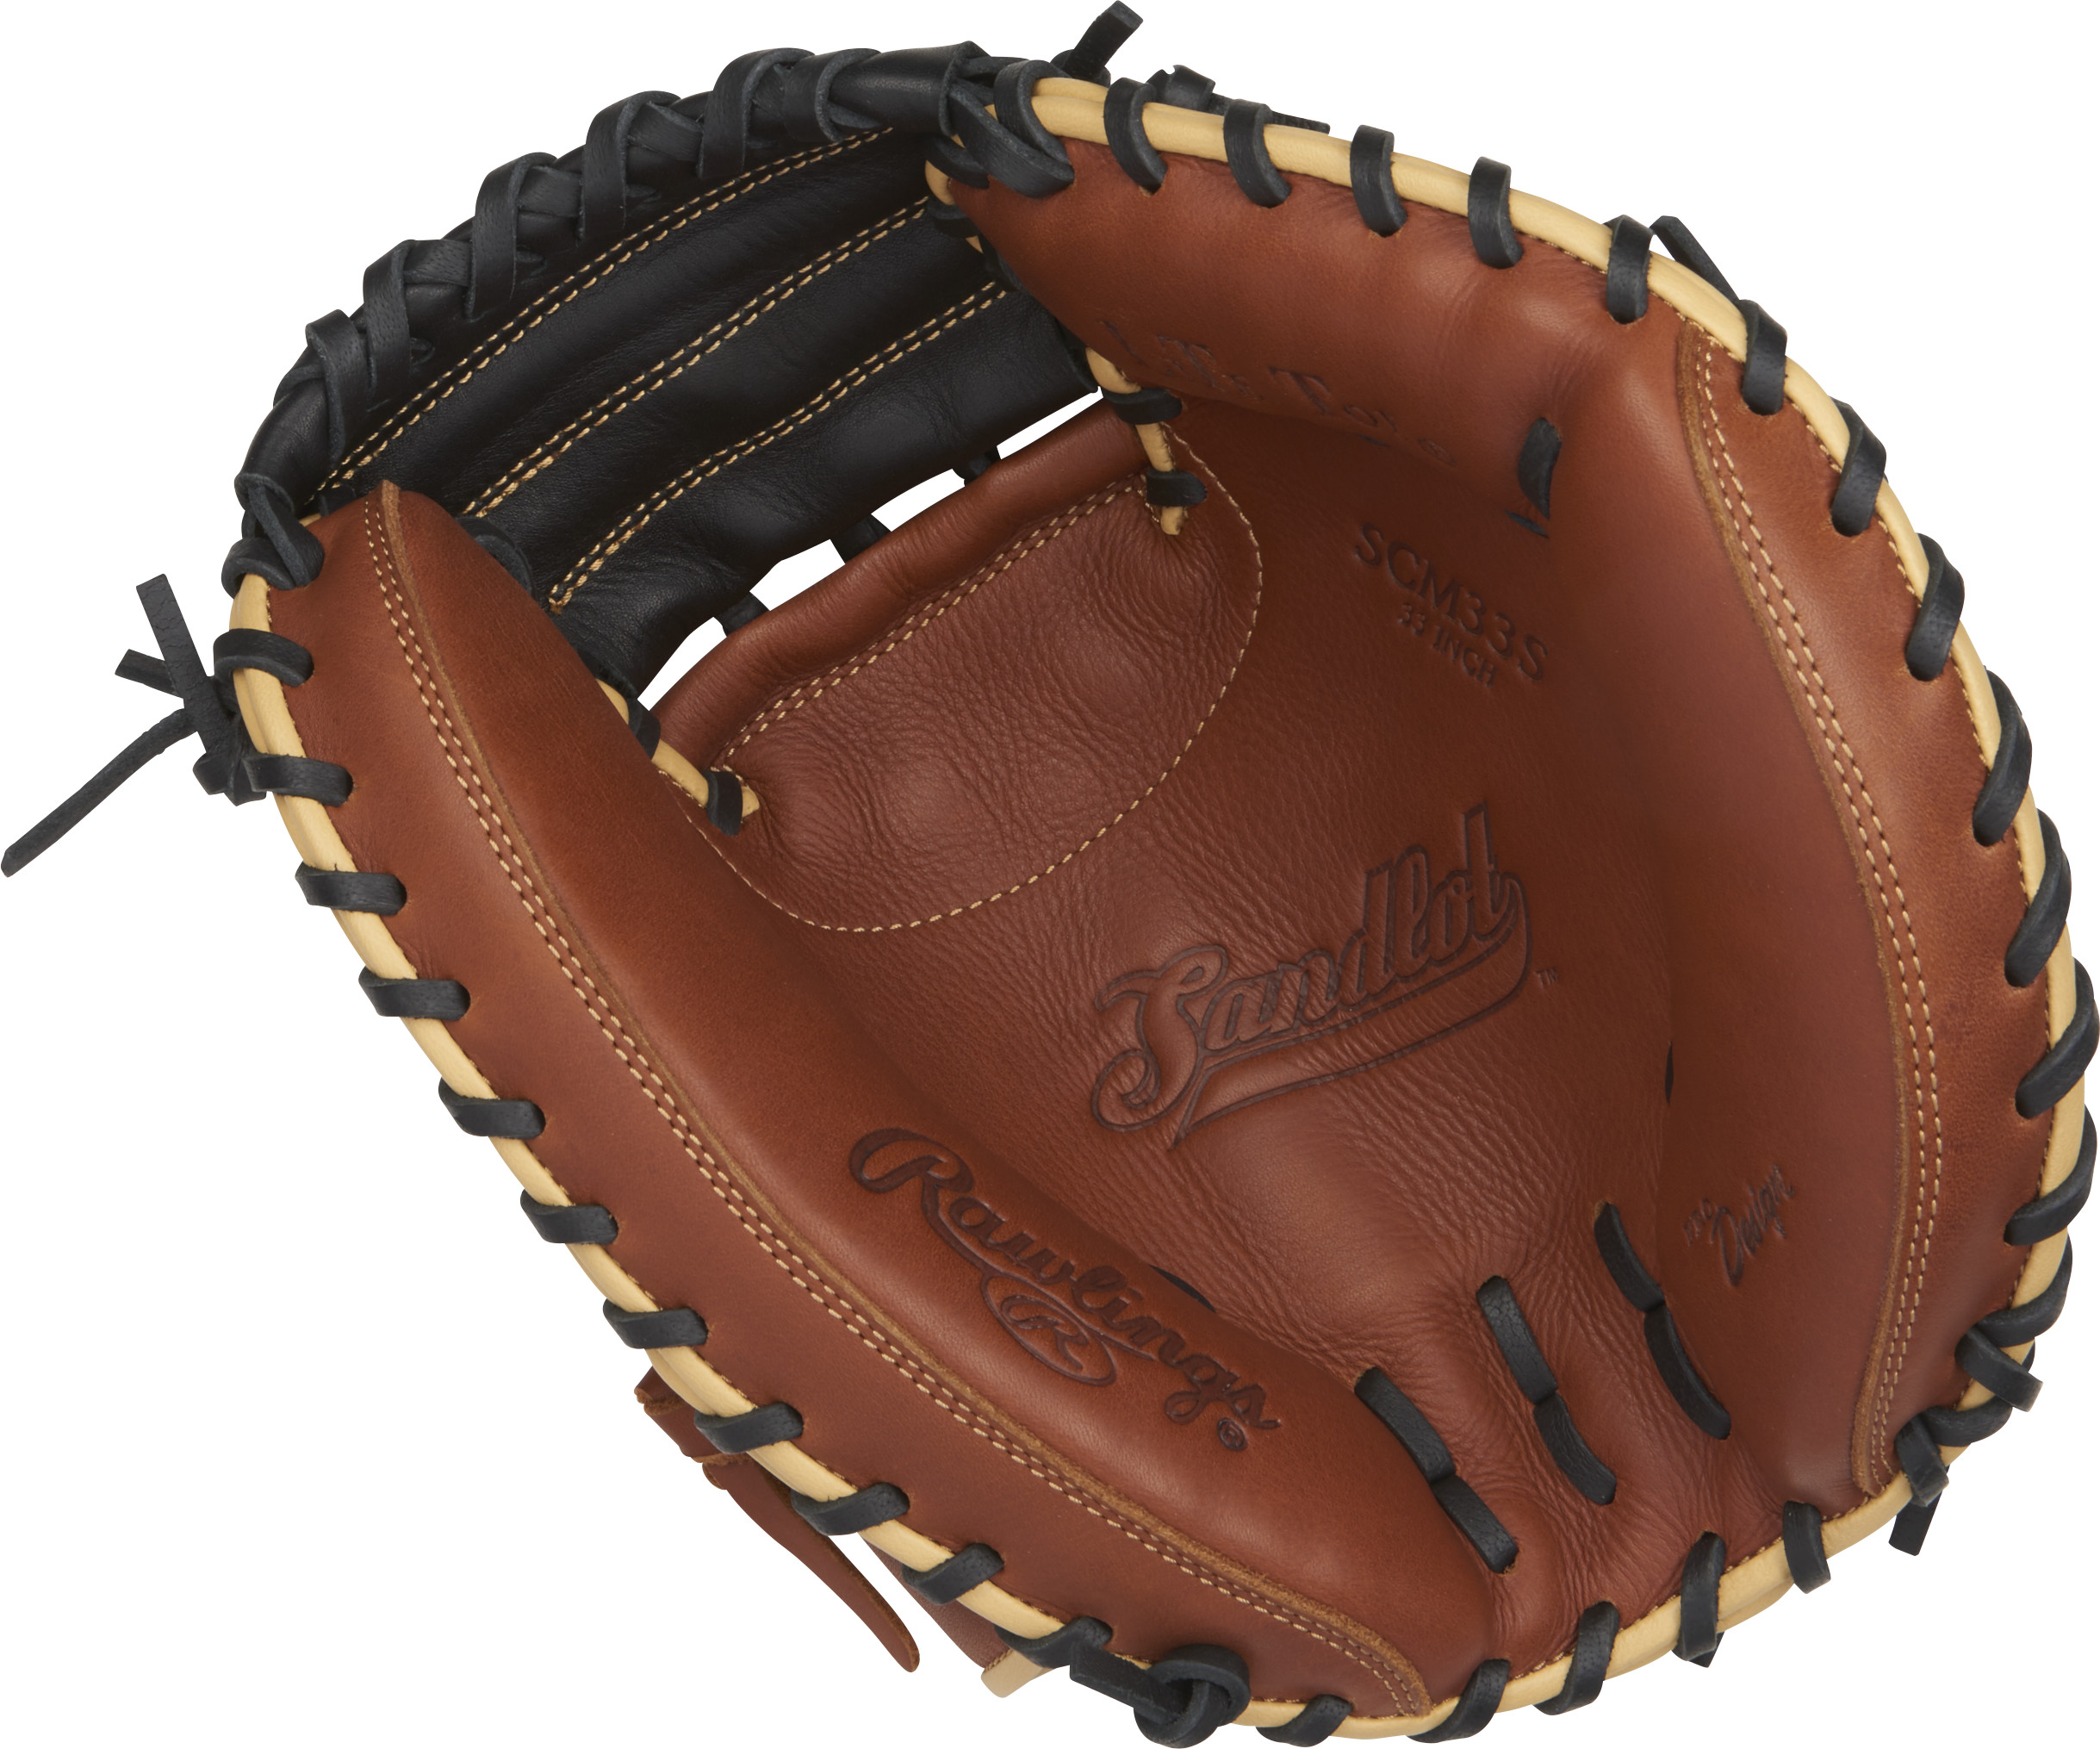 http://www.bestbatdeals.com/images/gloves/rawlings/SCM33S-1.jpg